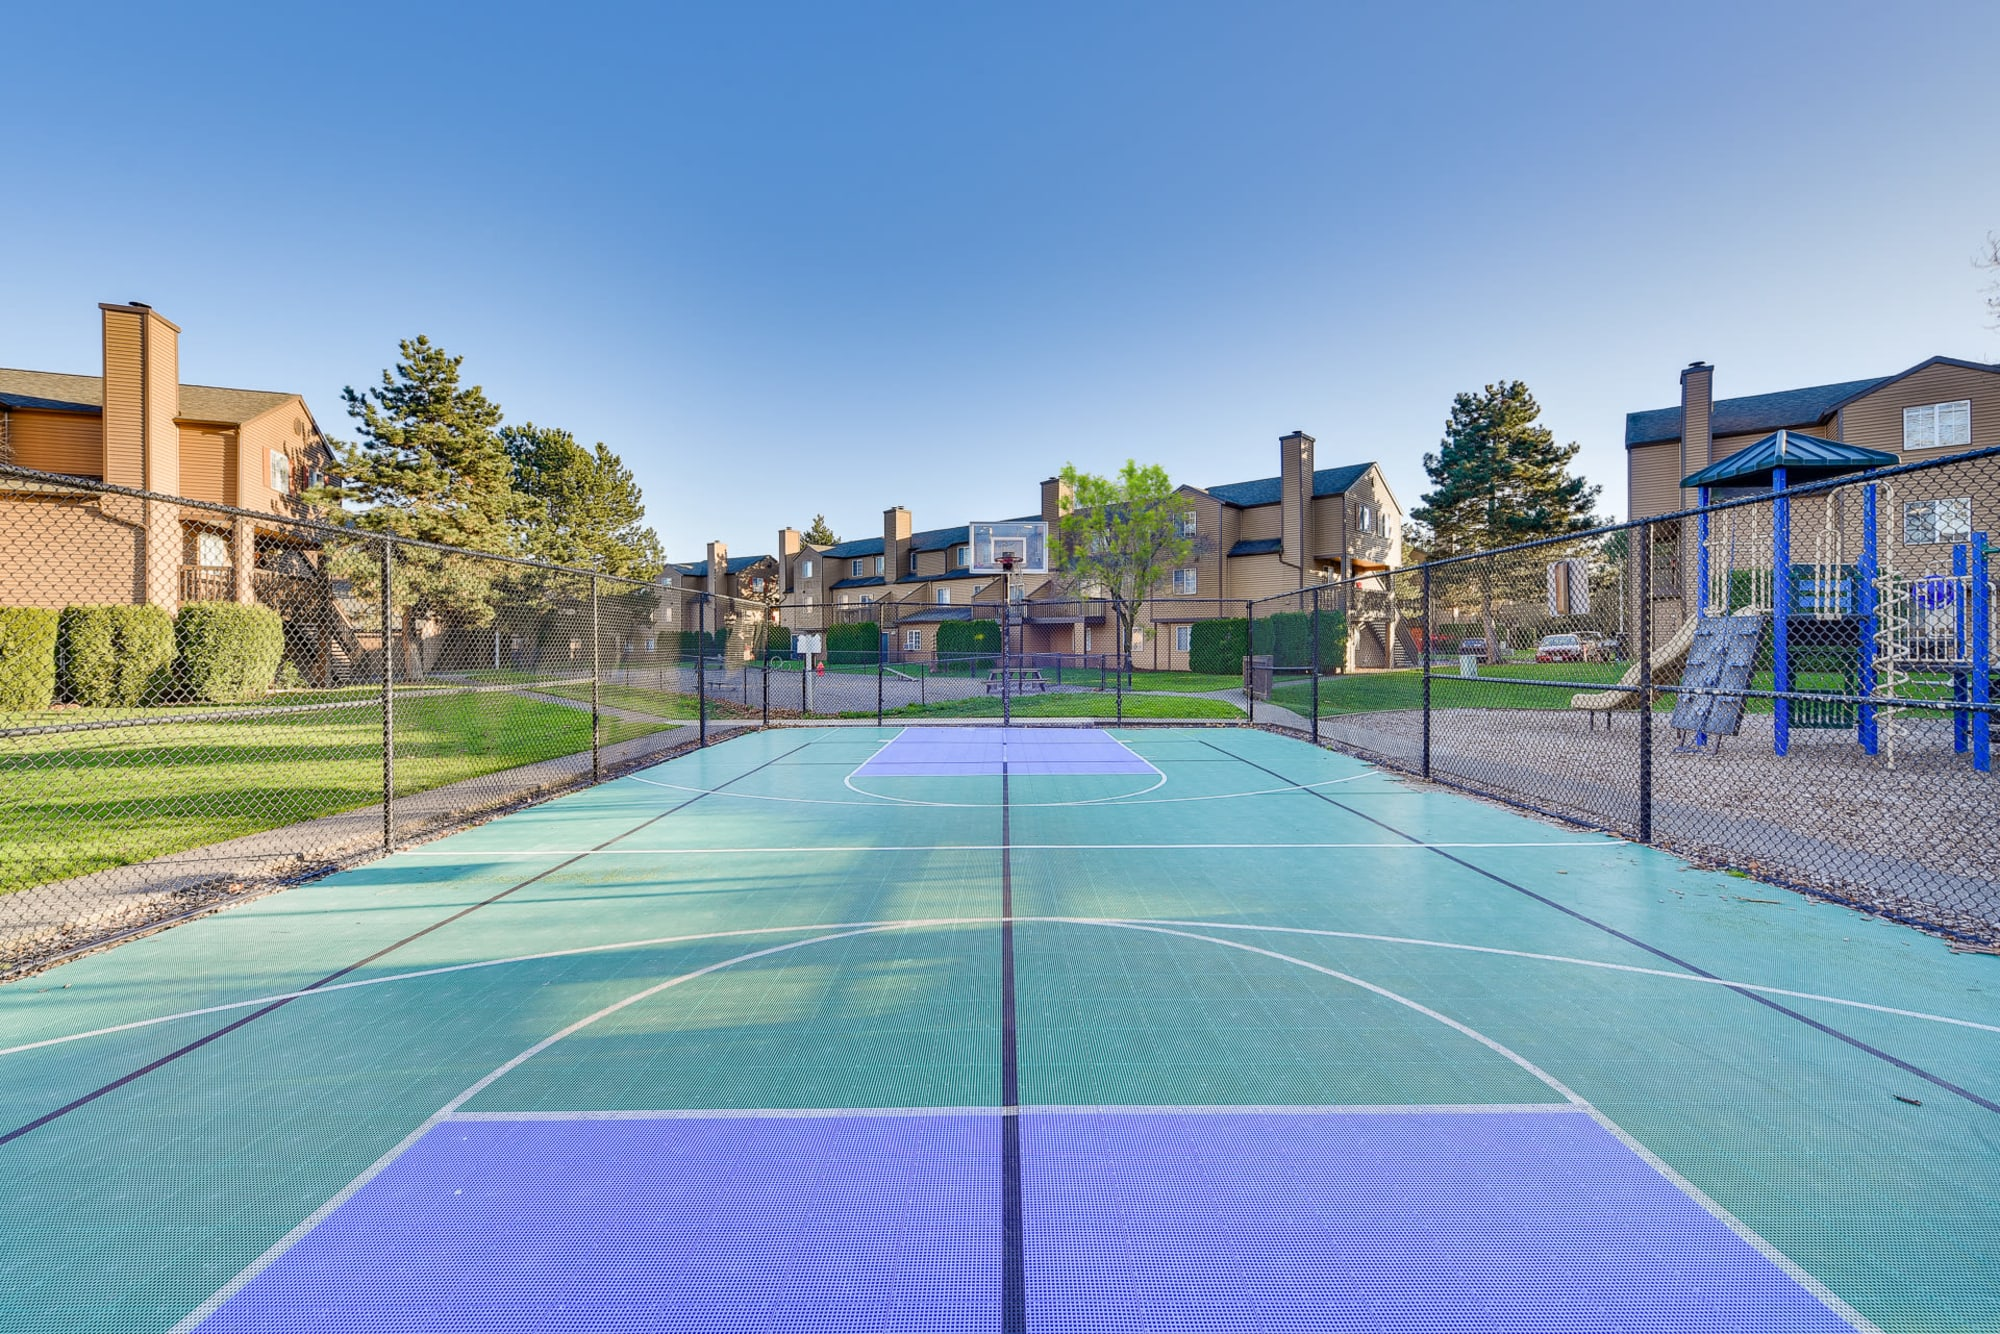 Sports court at Renaissance at 29th Apartments in Vancouver, Washington